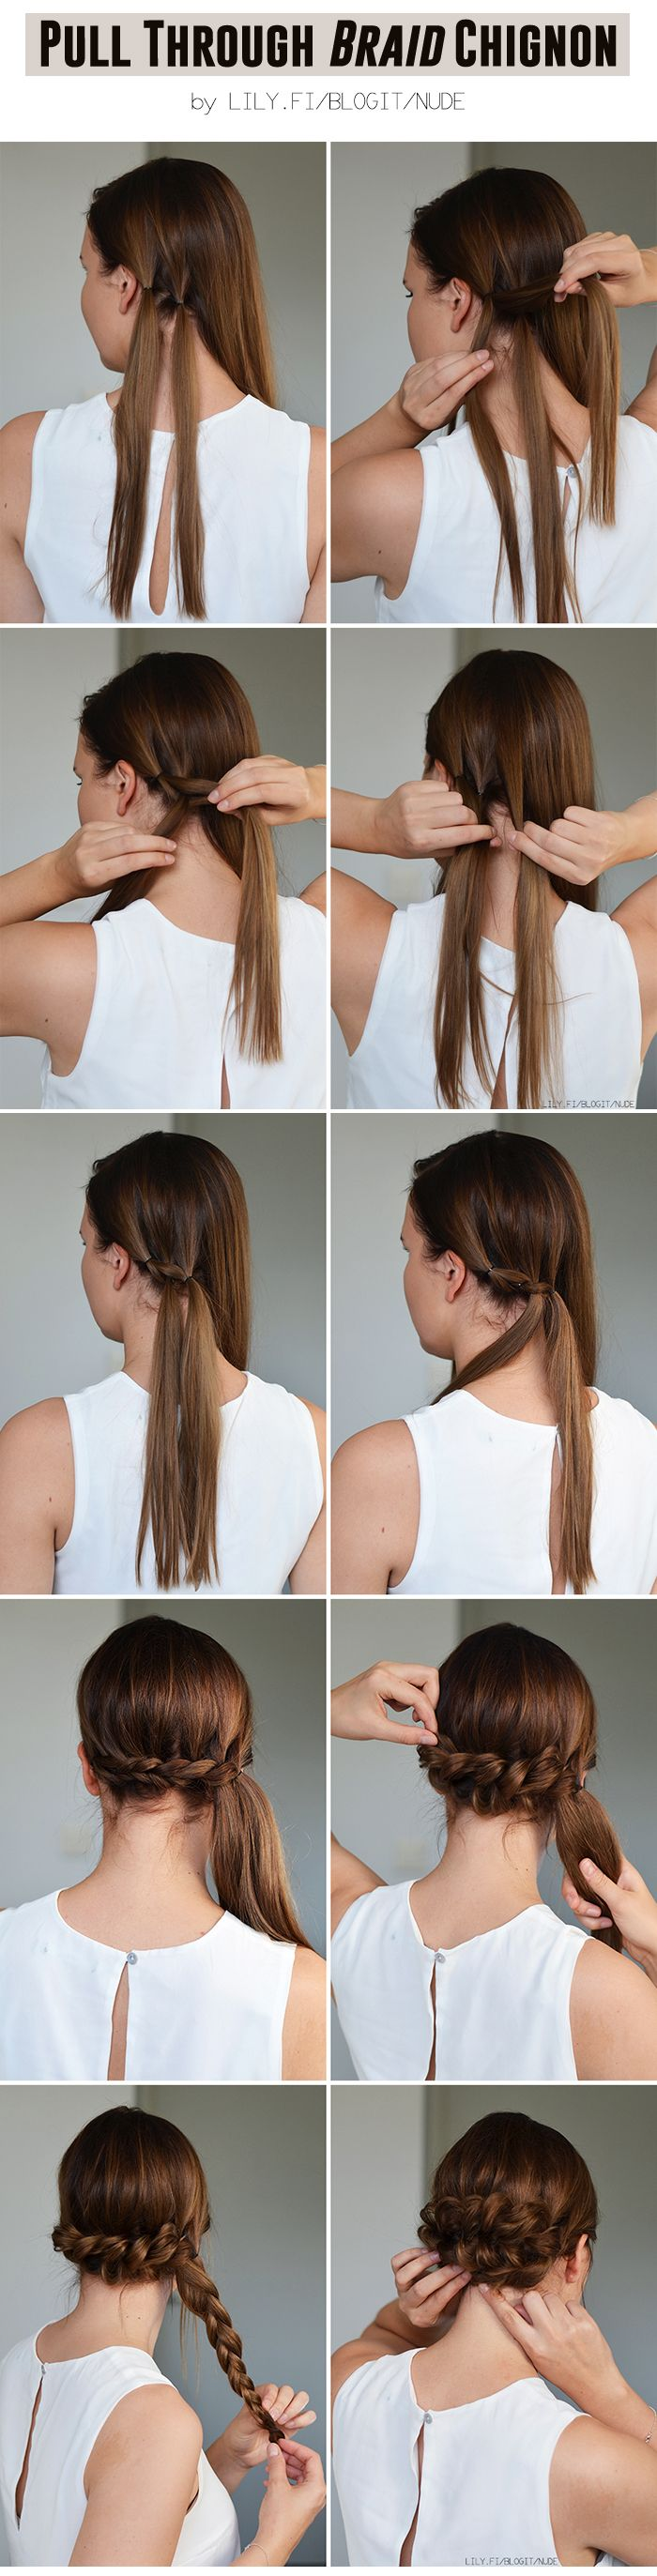 Pull Through Braid Chignon for a wedding or on a date <3